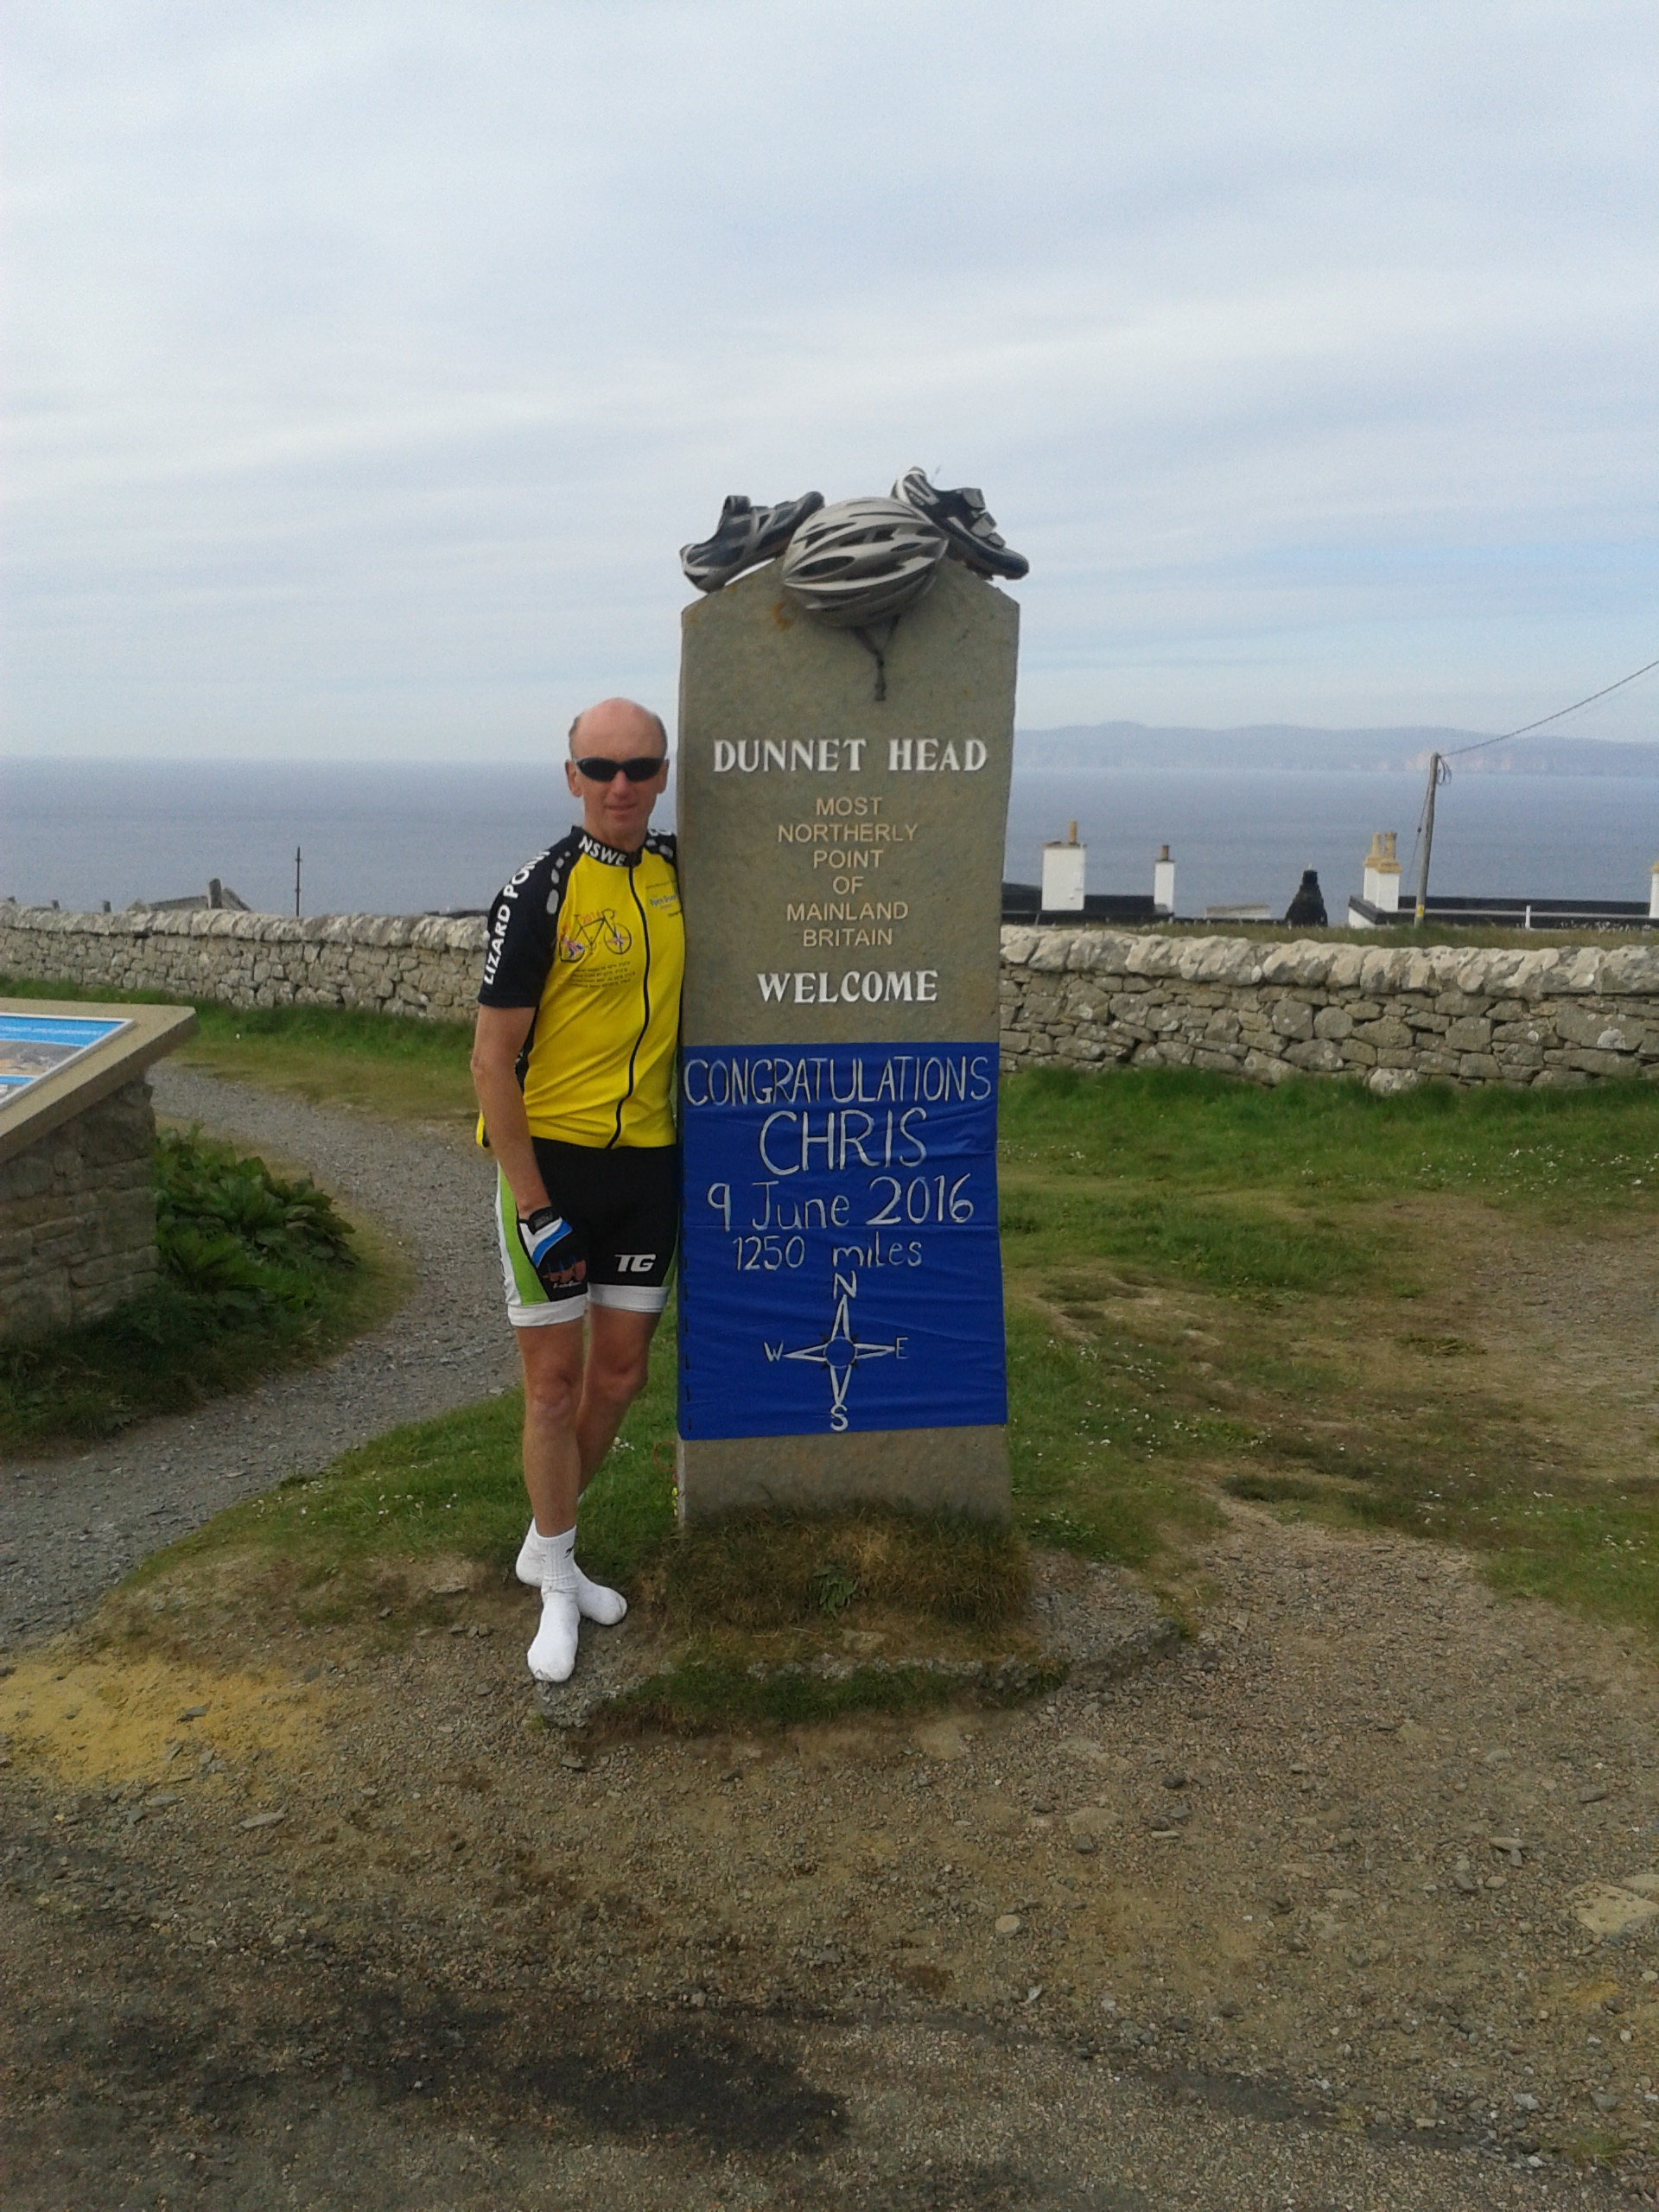 Dunnet Head - Challenge completed!